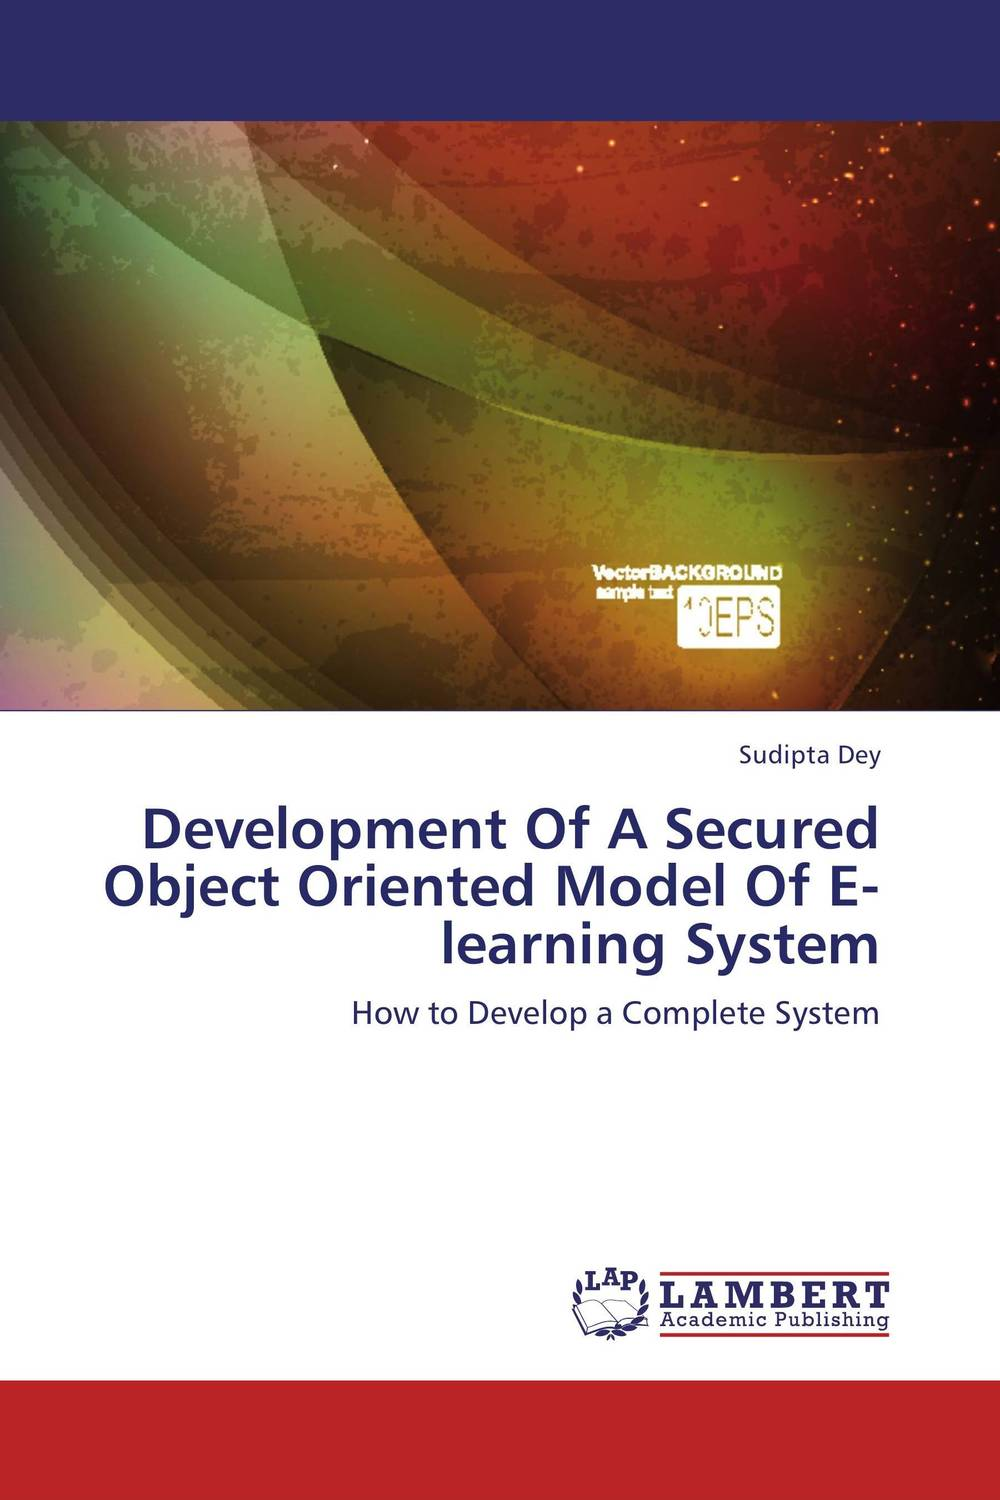 Development Of A Secured Object Oriented Model Of E-learning System